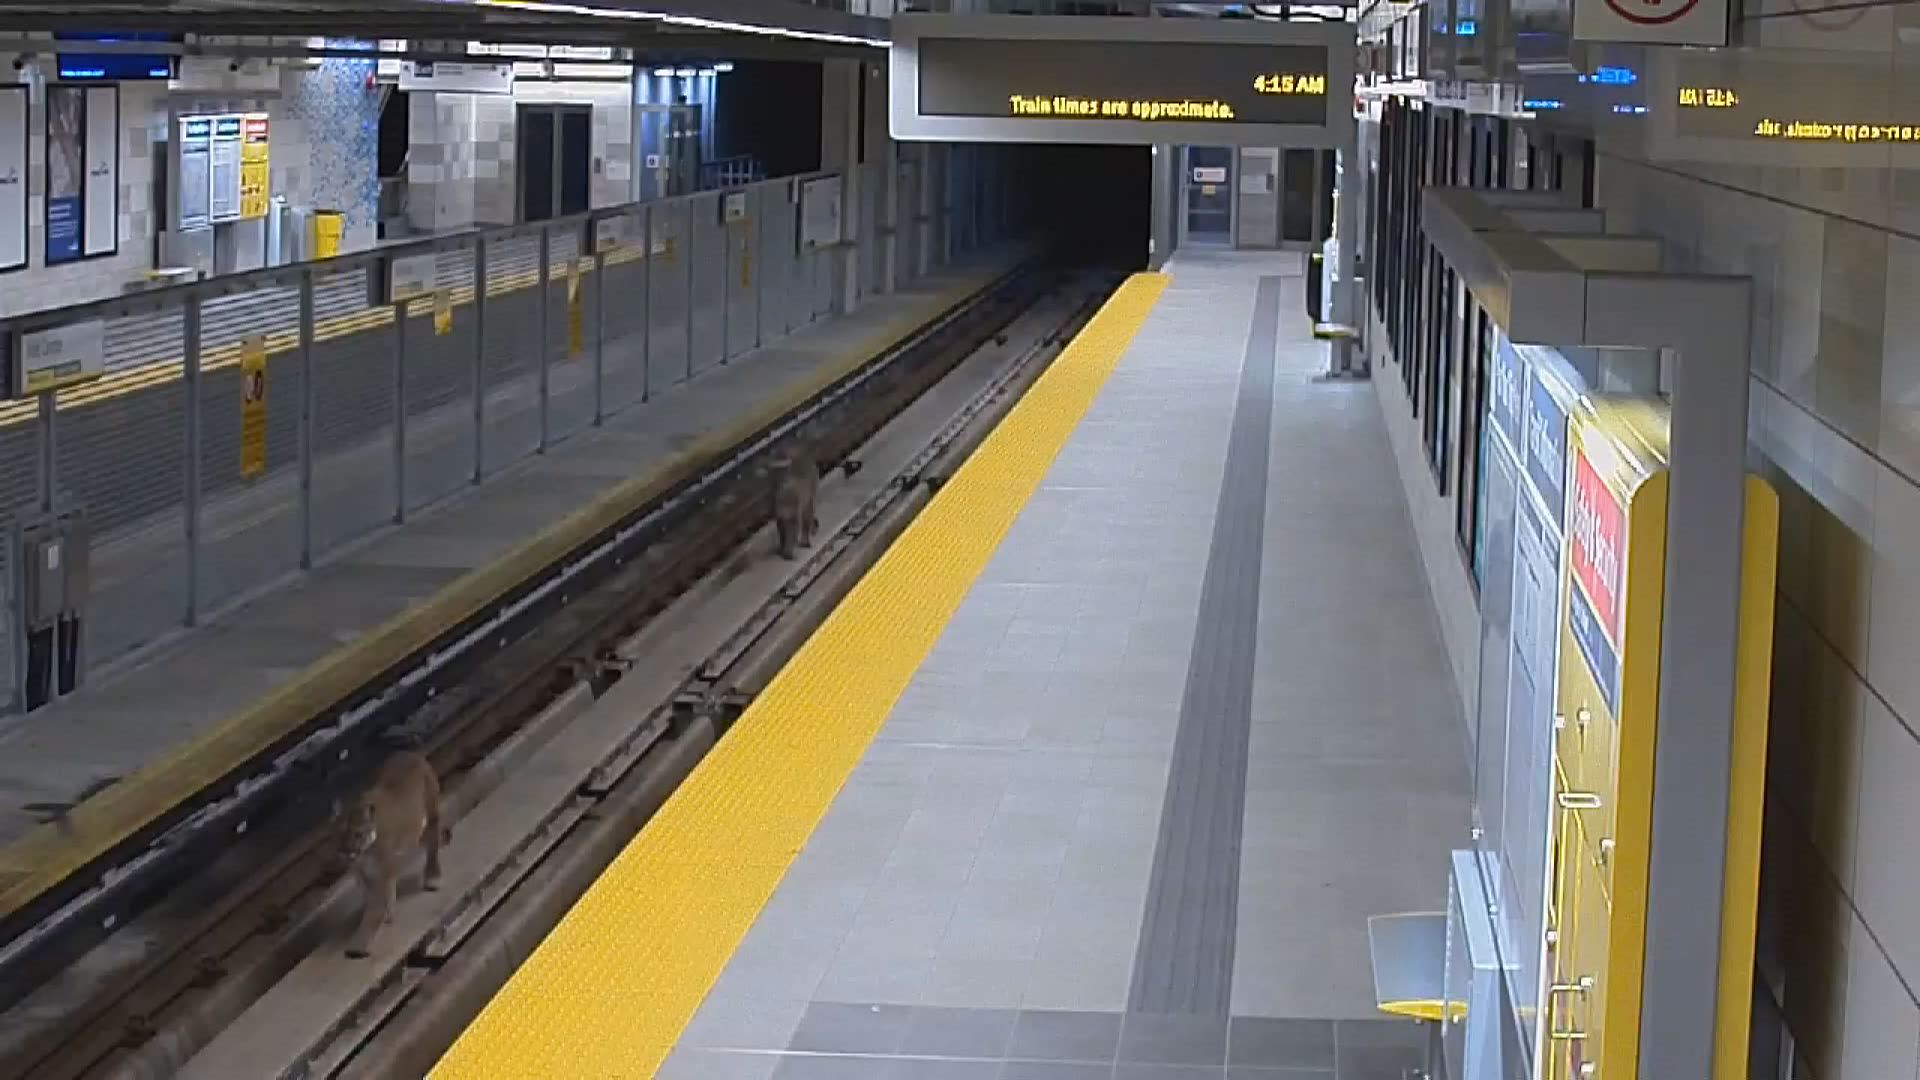 Cougars spotted on SkyTrain tracks in Port Moody